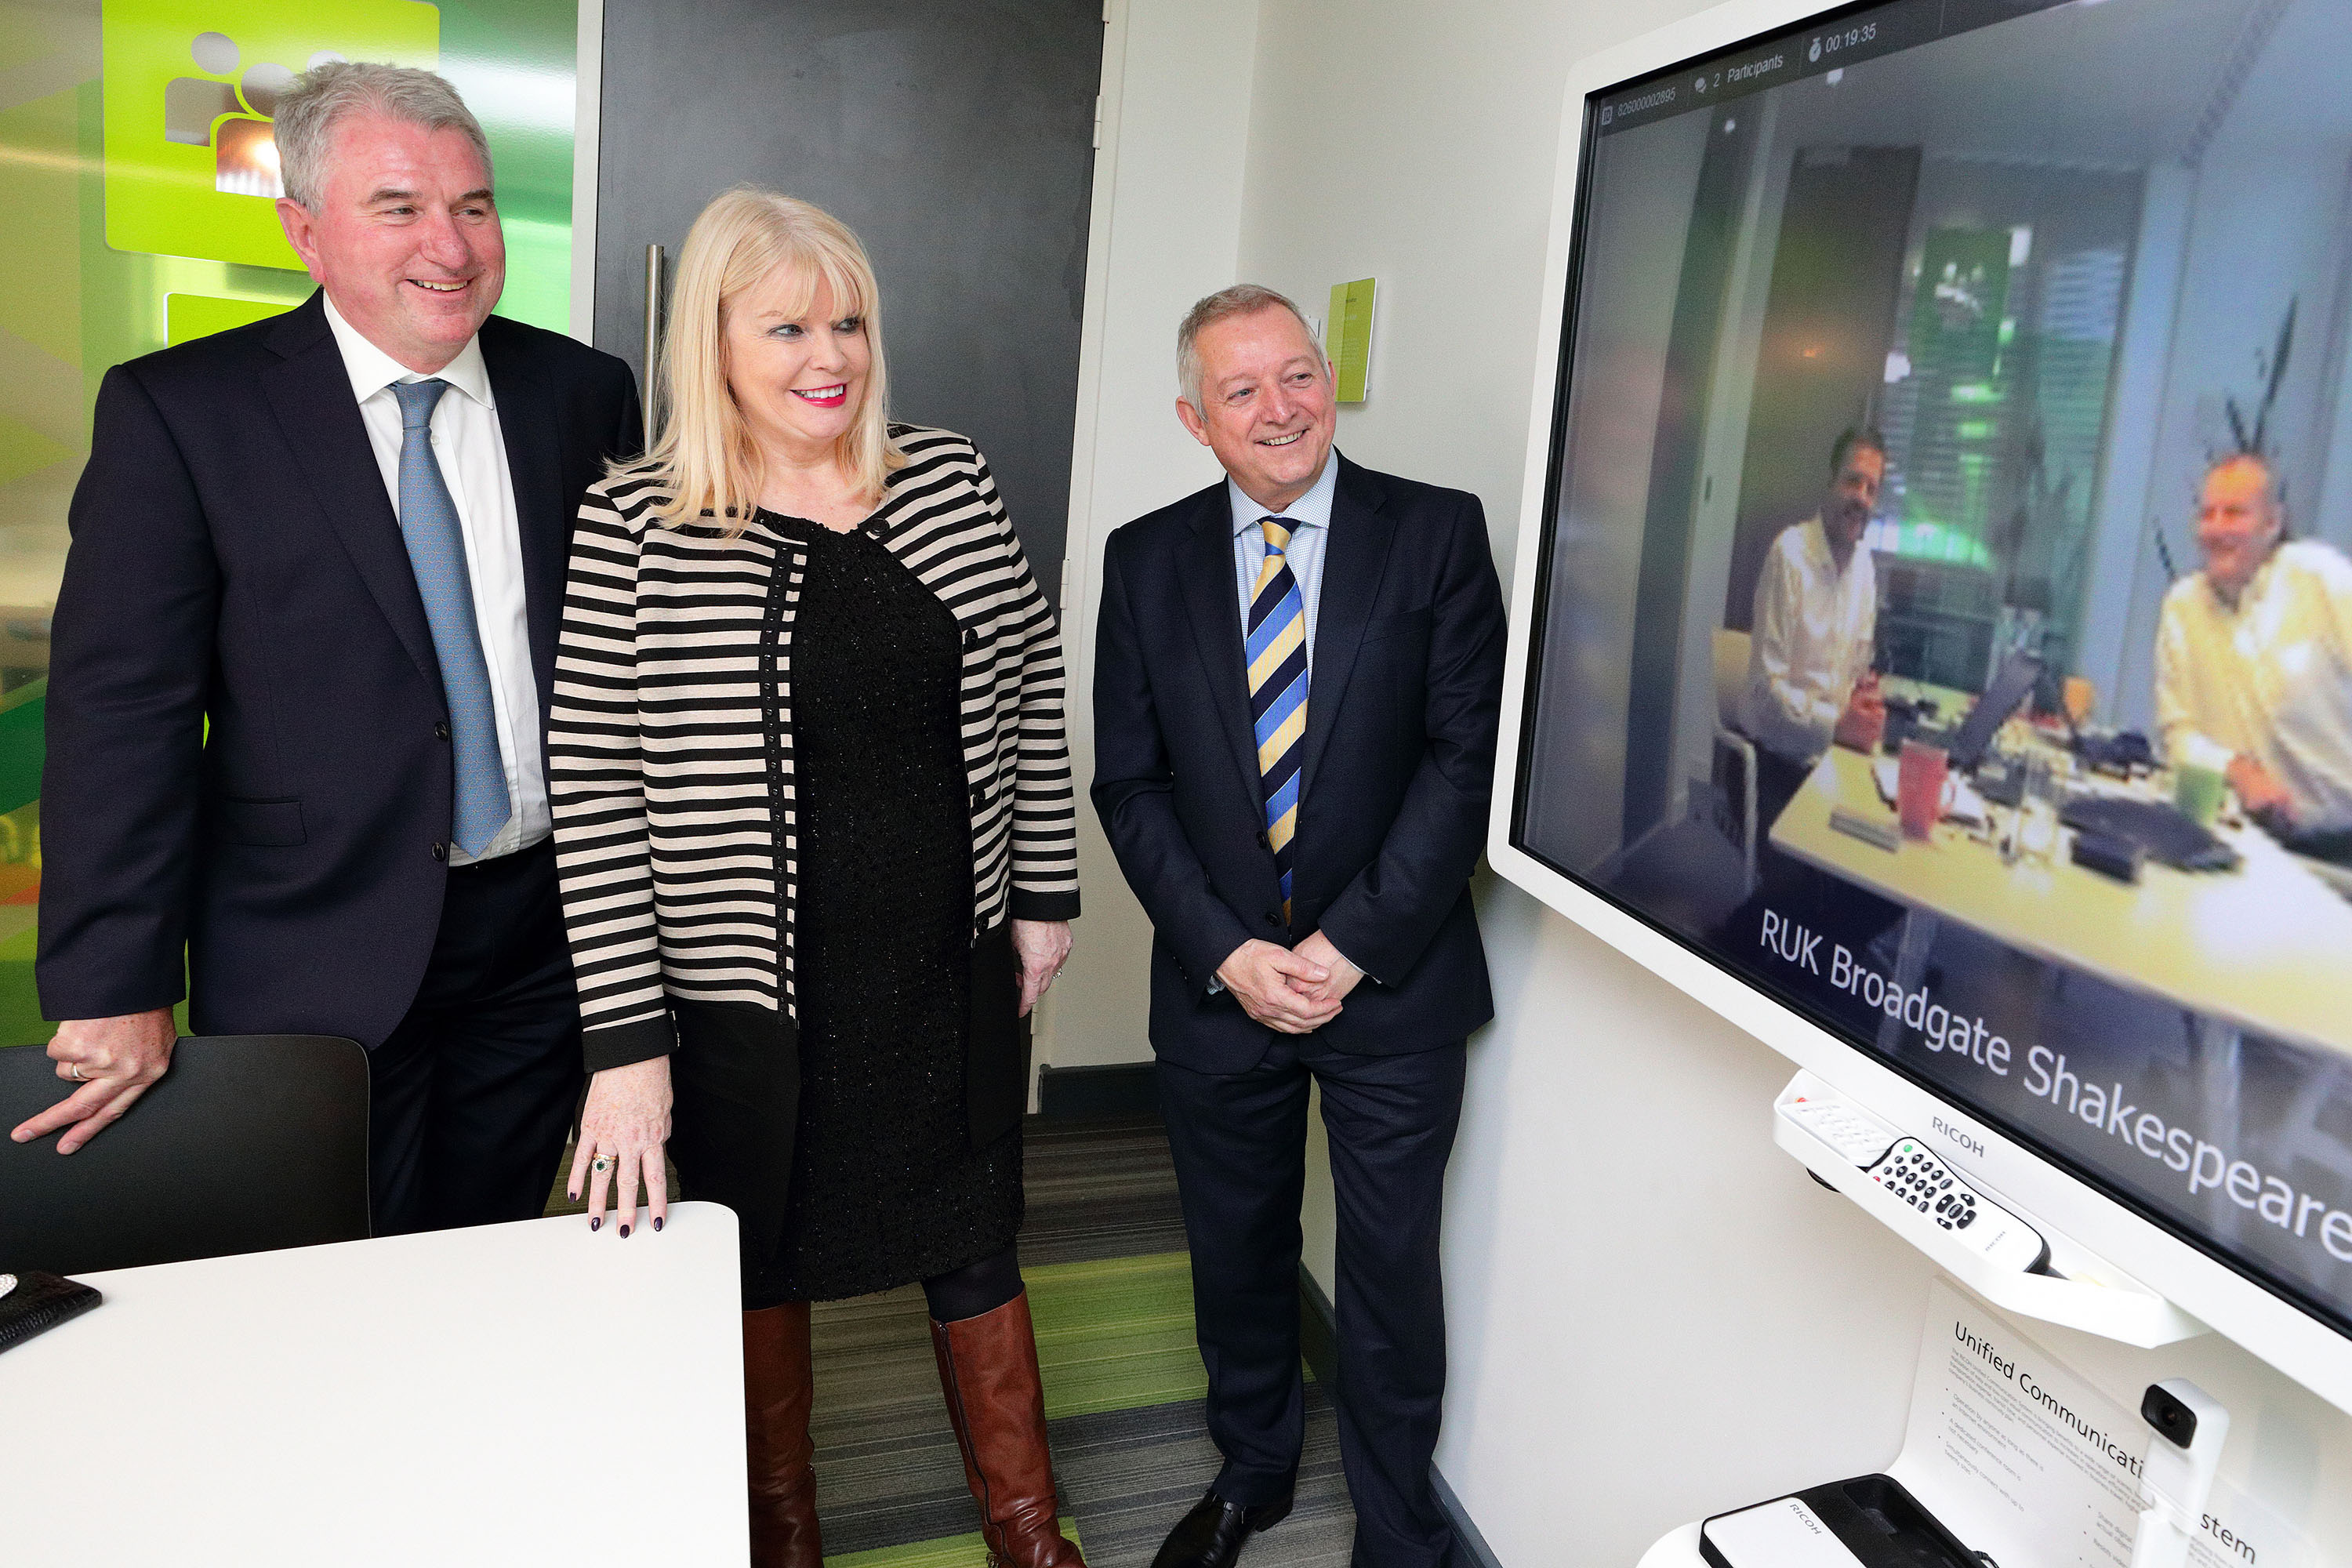 (2)	Pictured talking via videoconference to Ricoh colleagues at the opening of Ricoh's new Irish headquarters in Airside Business Park, Swords, Co. Dublin are (L to R) Phil Keoghan, CEO, Ricoh UK and Ireland; Minister for Jobs, Enterprise & Innovation, Mary Mitchell O'Connor TD; and Gary Hopwood, General Manager, Ricoh Ireland